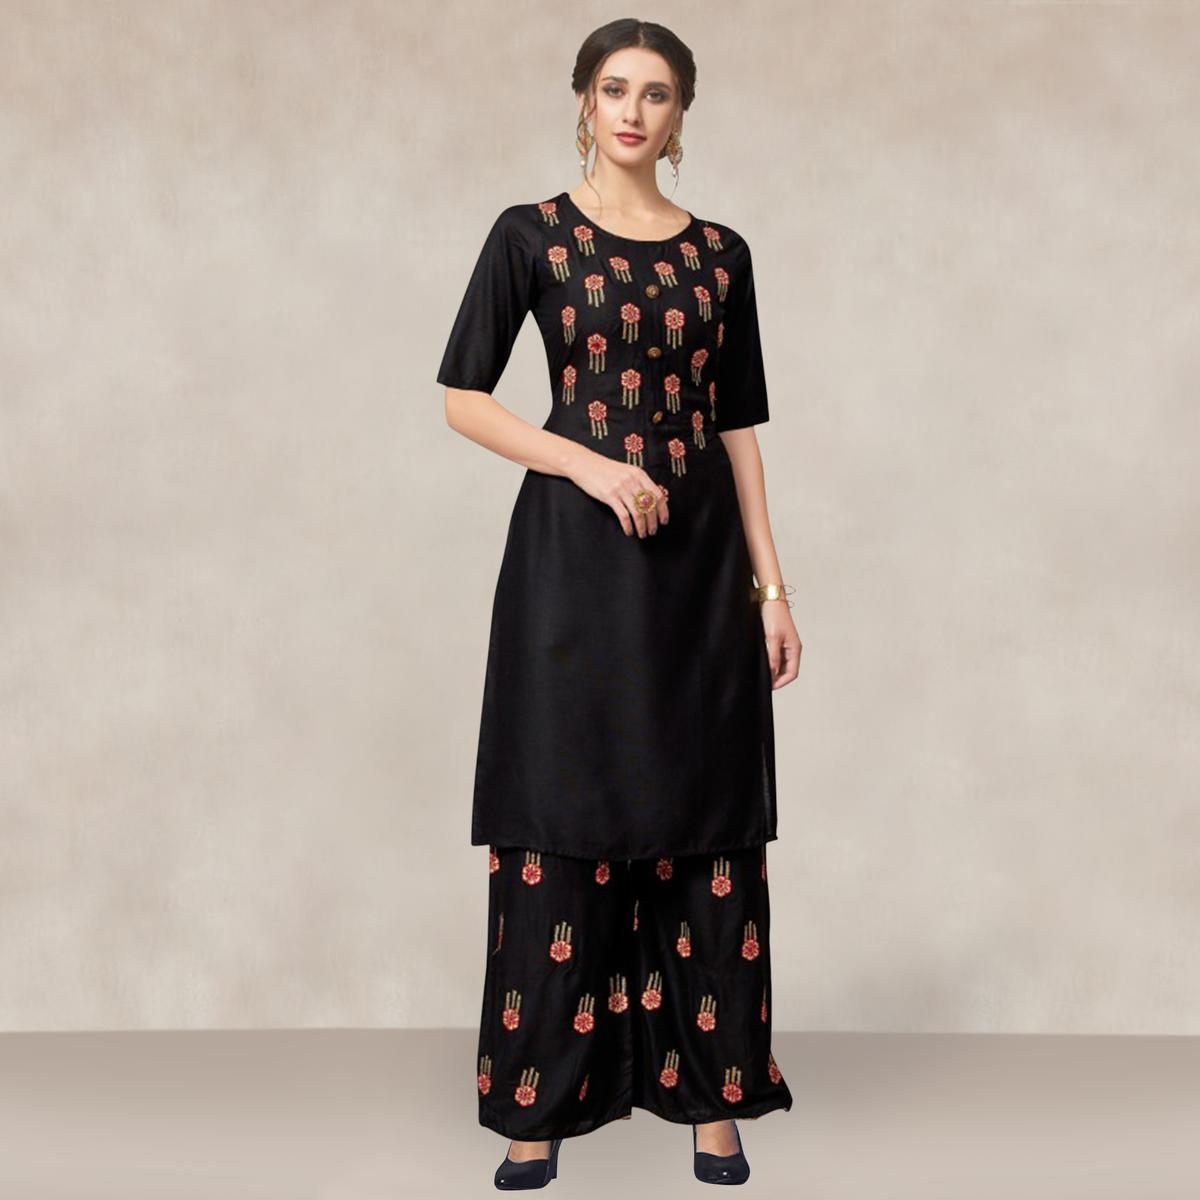 Desirable Black Colored Partywear Embroidered Rayon Kurti-Palazzo Set